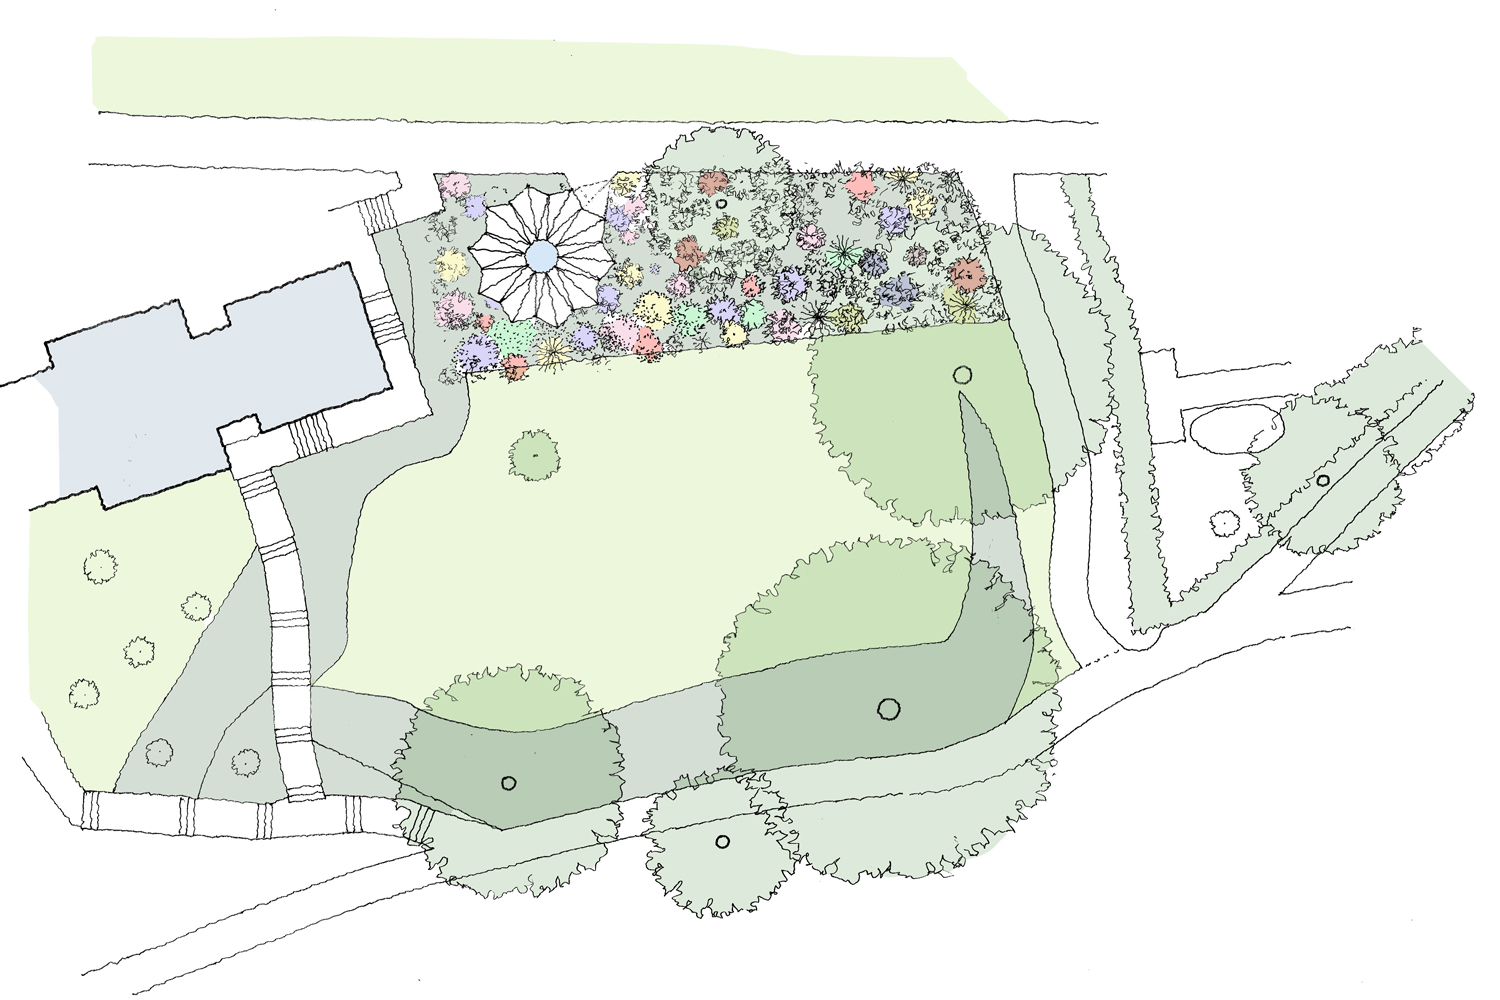 Site plan for the Listening Space amongst flower bed